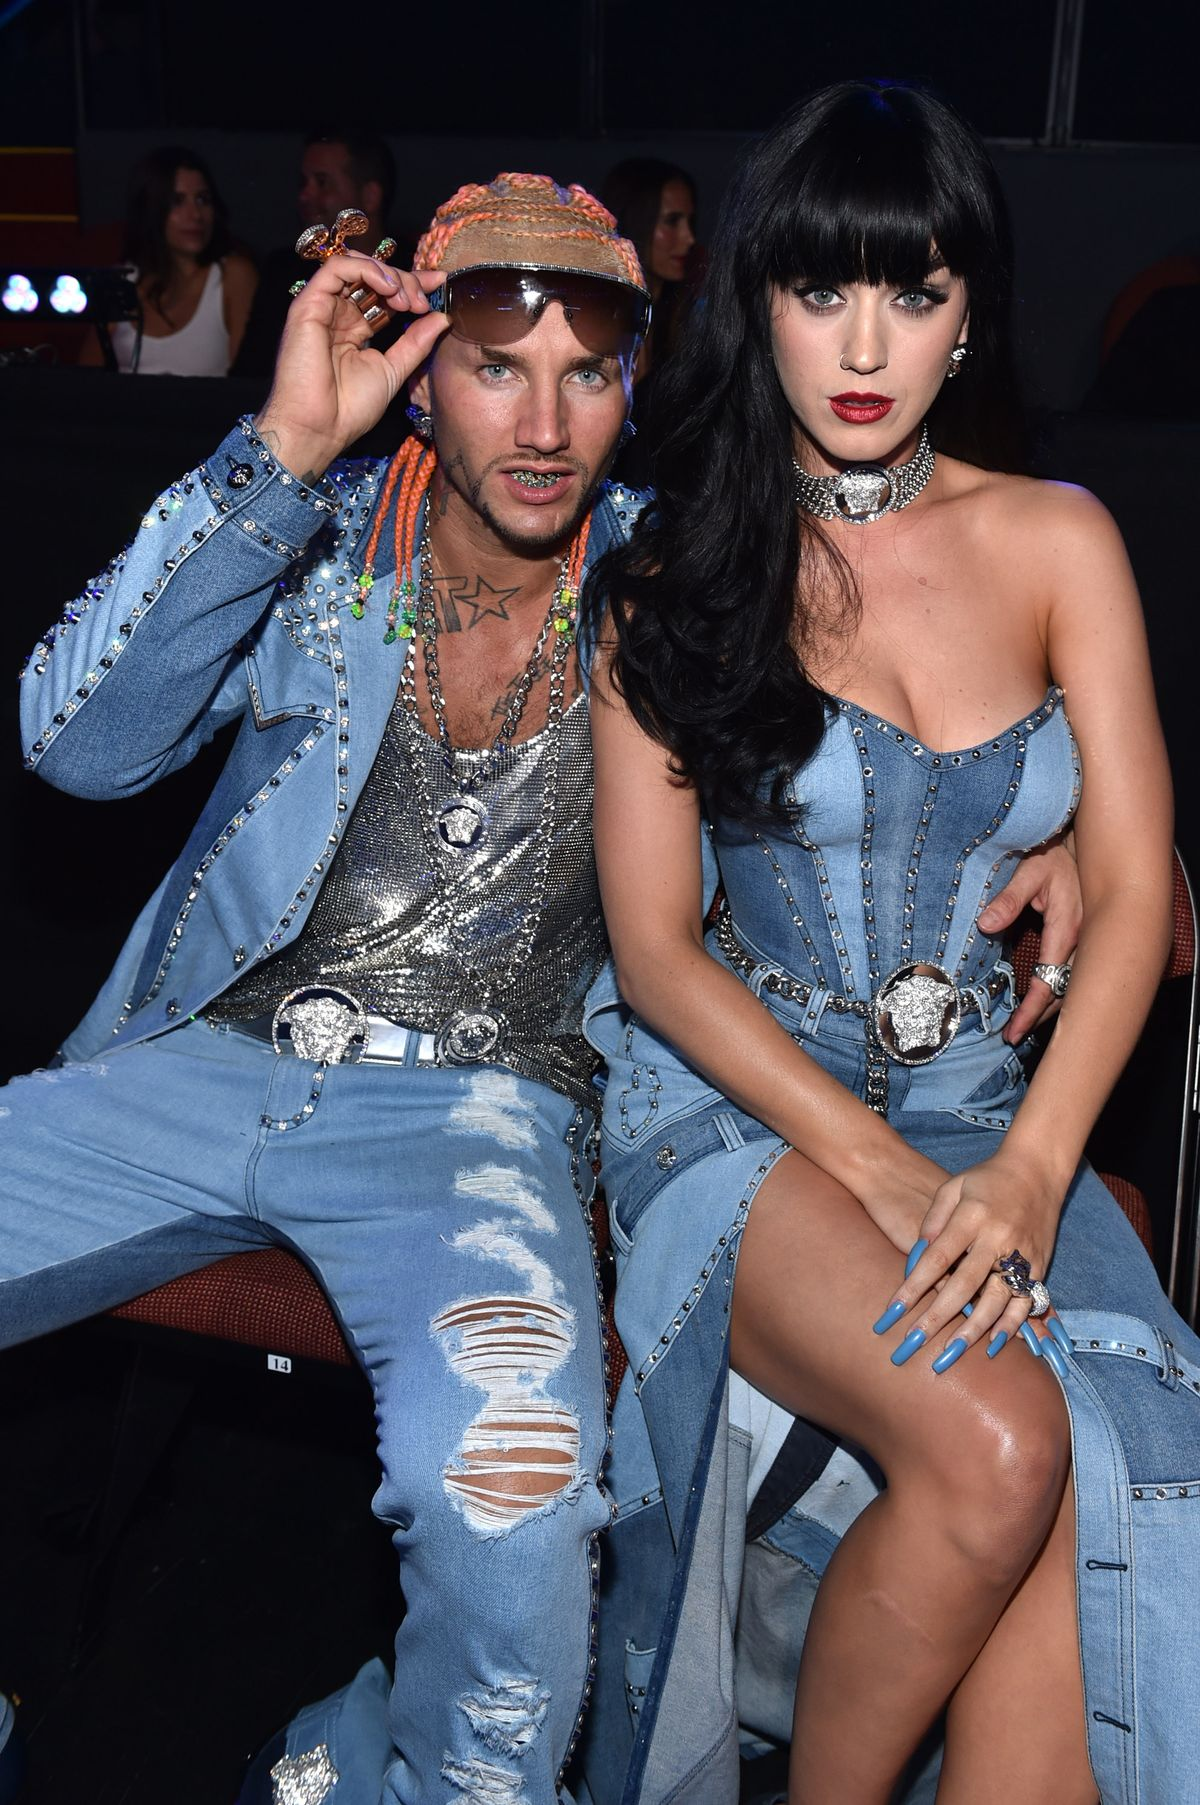 INGLEWOOD, CA - AUGUST 24: Katy Perry (R) and Riff Raff attend the 2014 MTV Video Music Awards at The Forum on August 24, 2014 in Inglewood, California. (Photo by MTV/MTV1415/Getty Images for MTV)